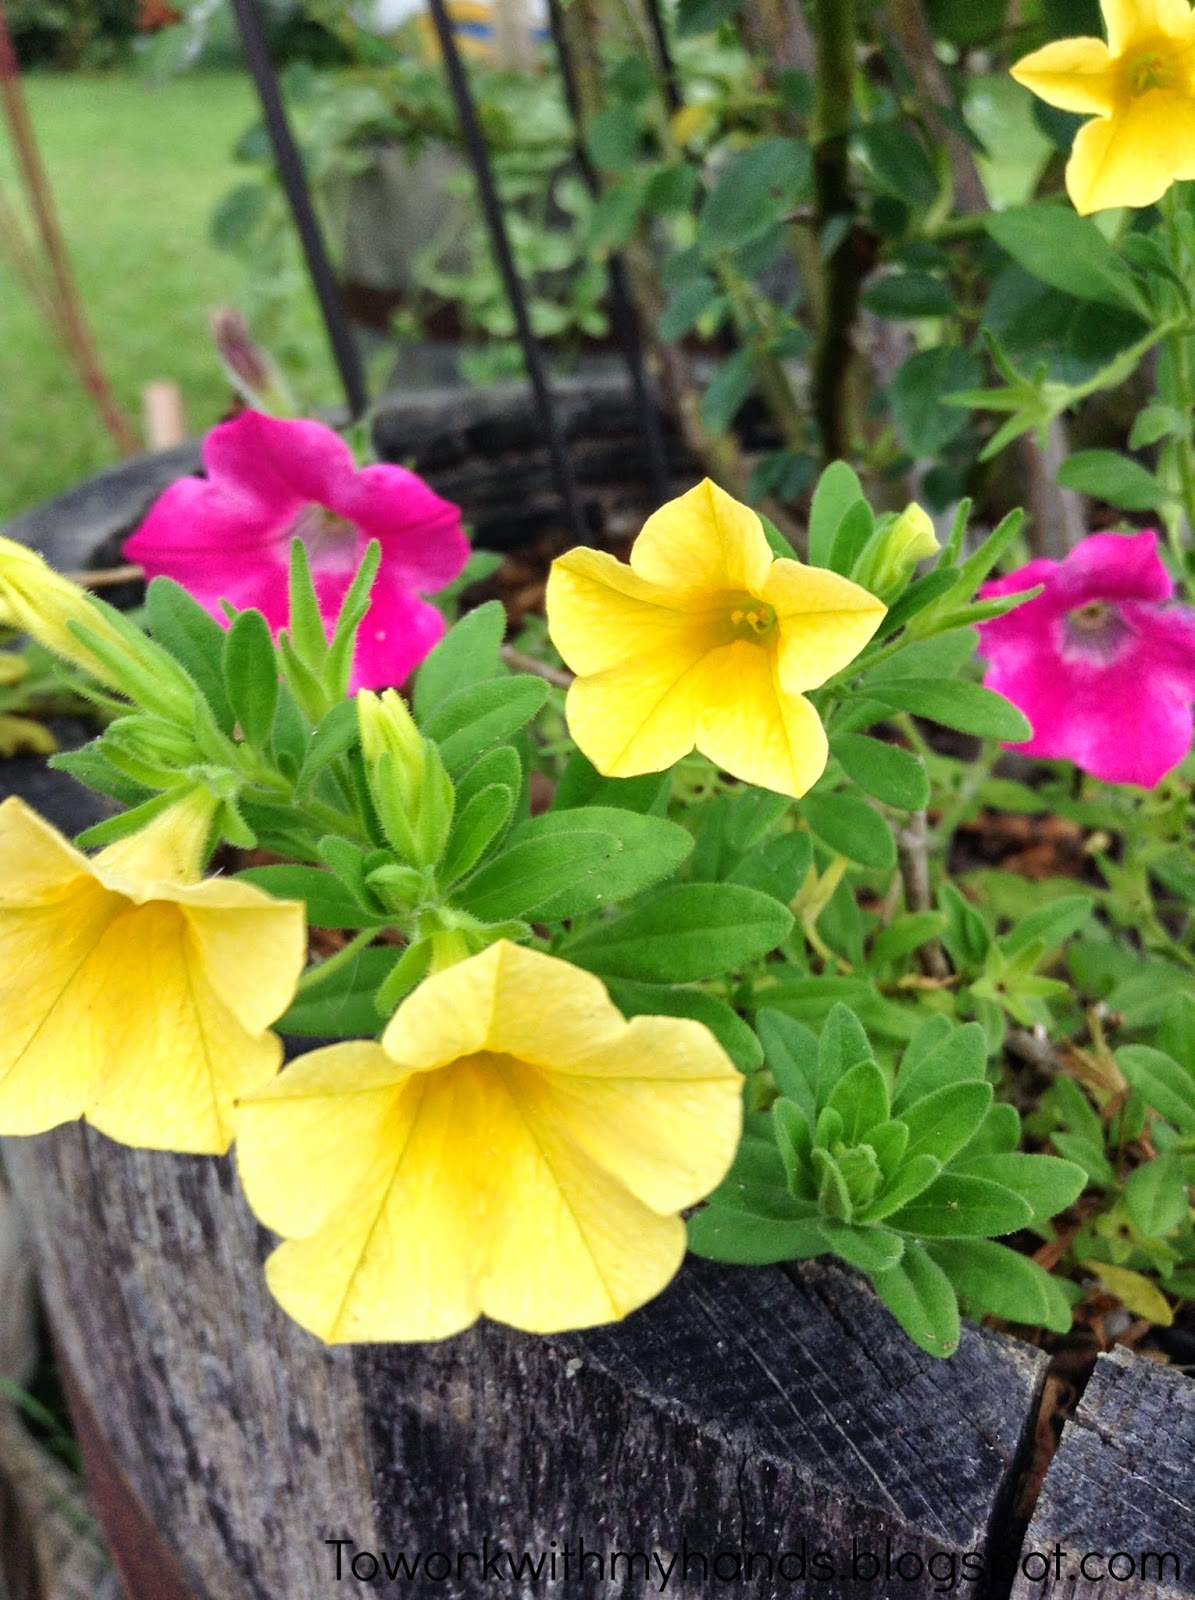 With its trailing, petunia-like tiny flowers, Calibrachoa makes a gorgeous choice for long-lasting blooms all season long.